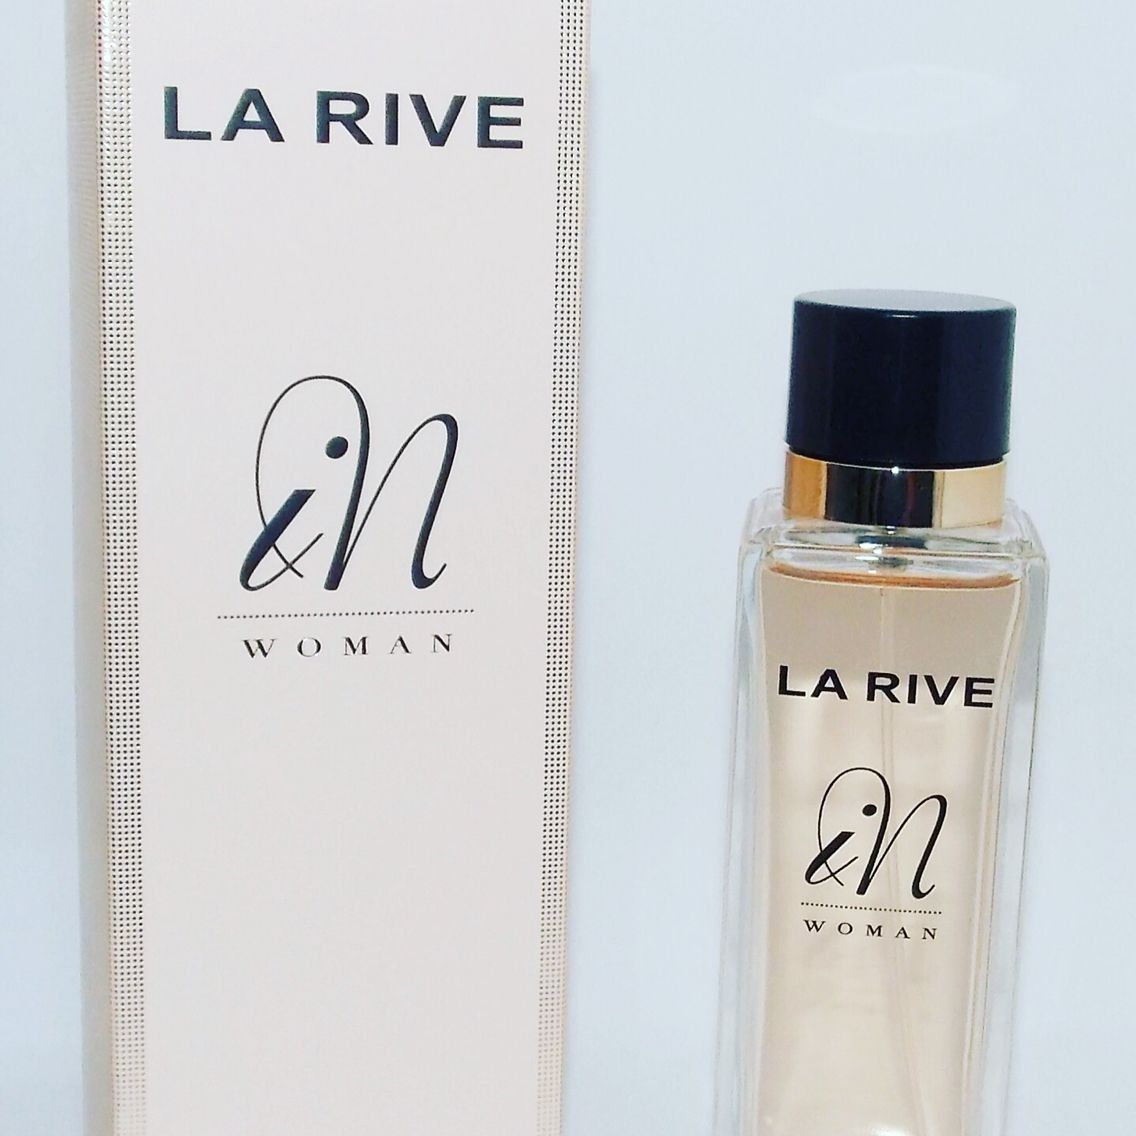 La Rive In Woman Perfekte Dupe Zur Giorgio Armani Si Review Auf Larive Edp 90ml Meinen Blog